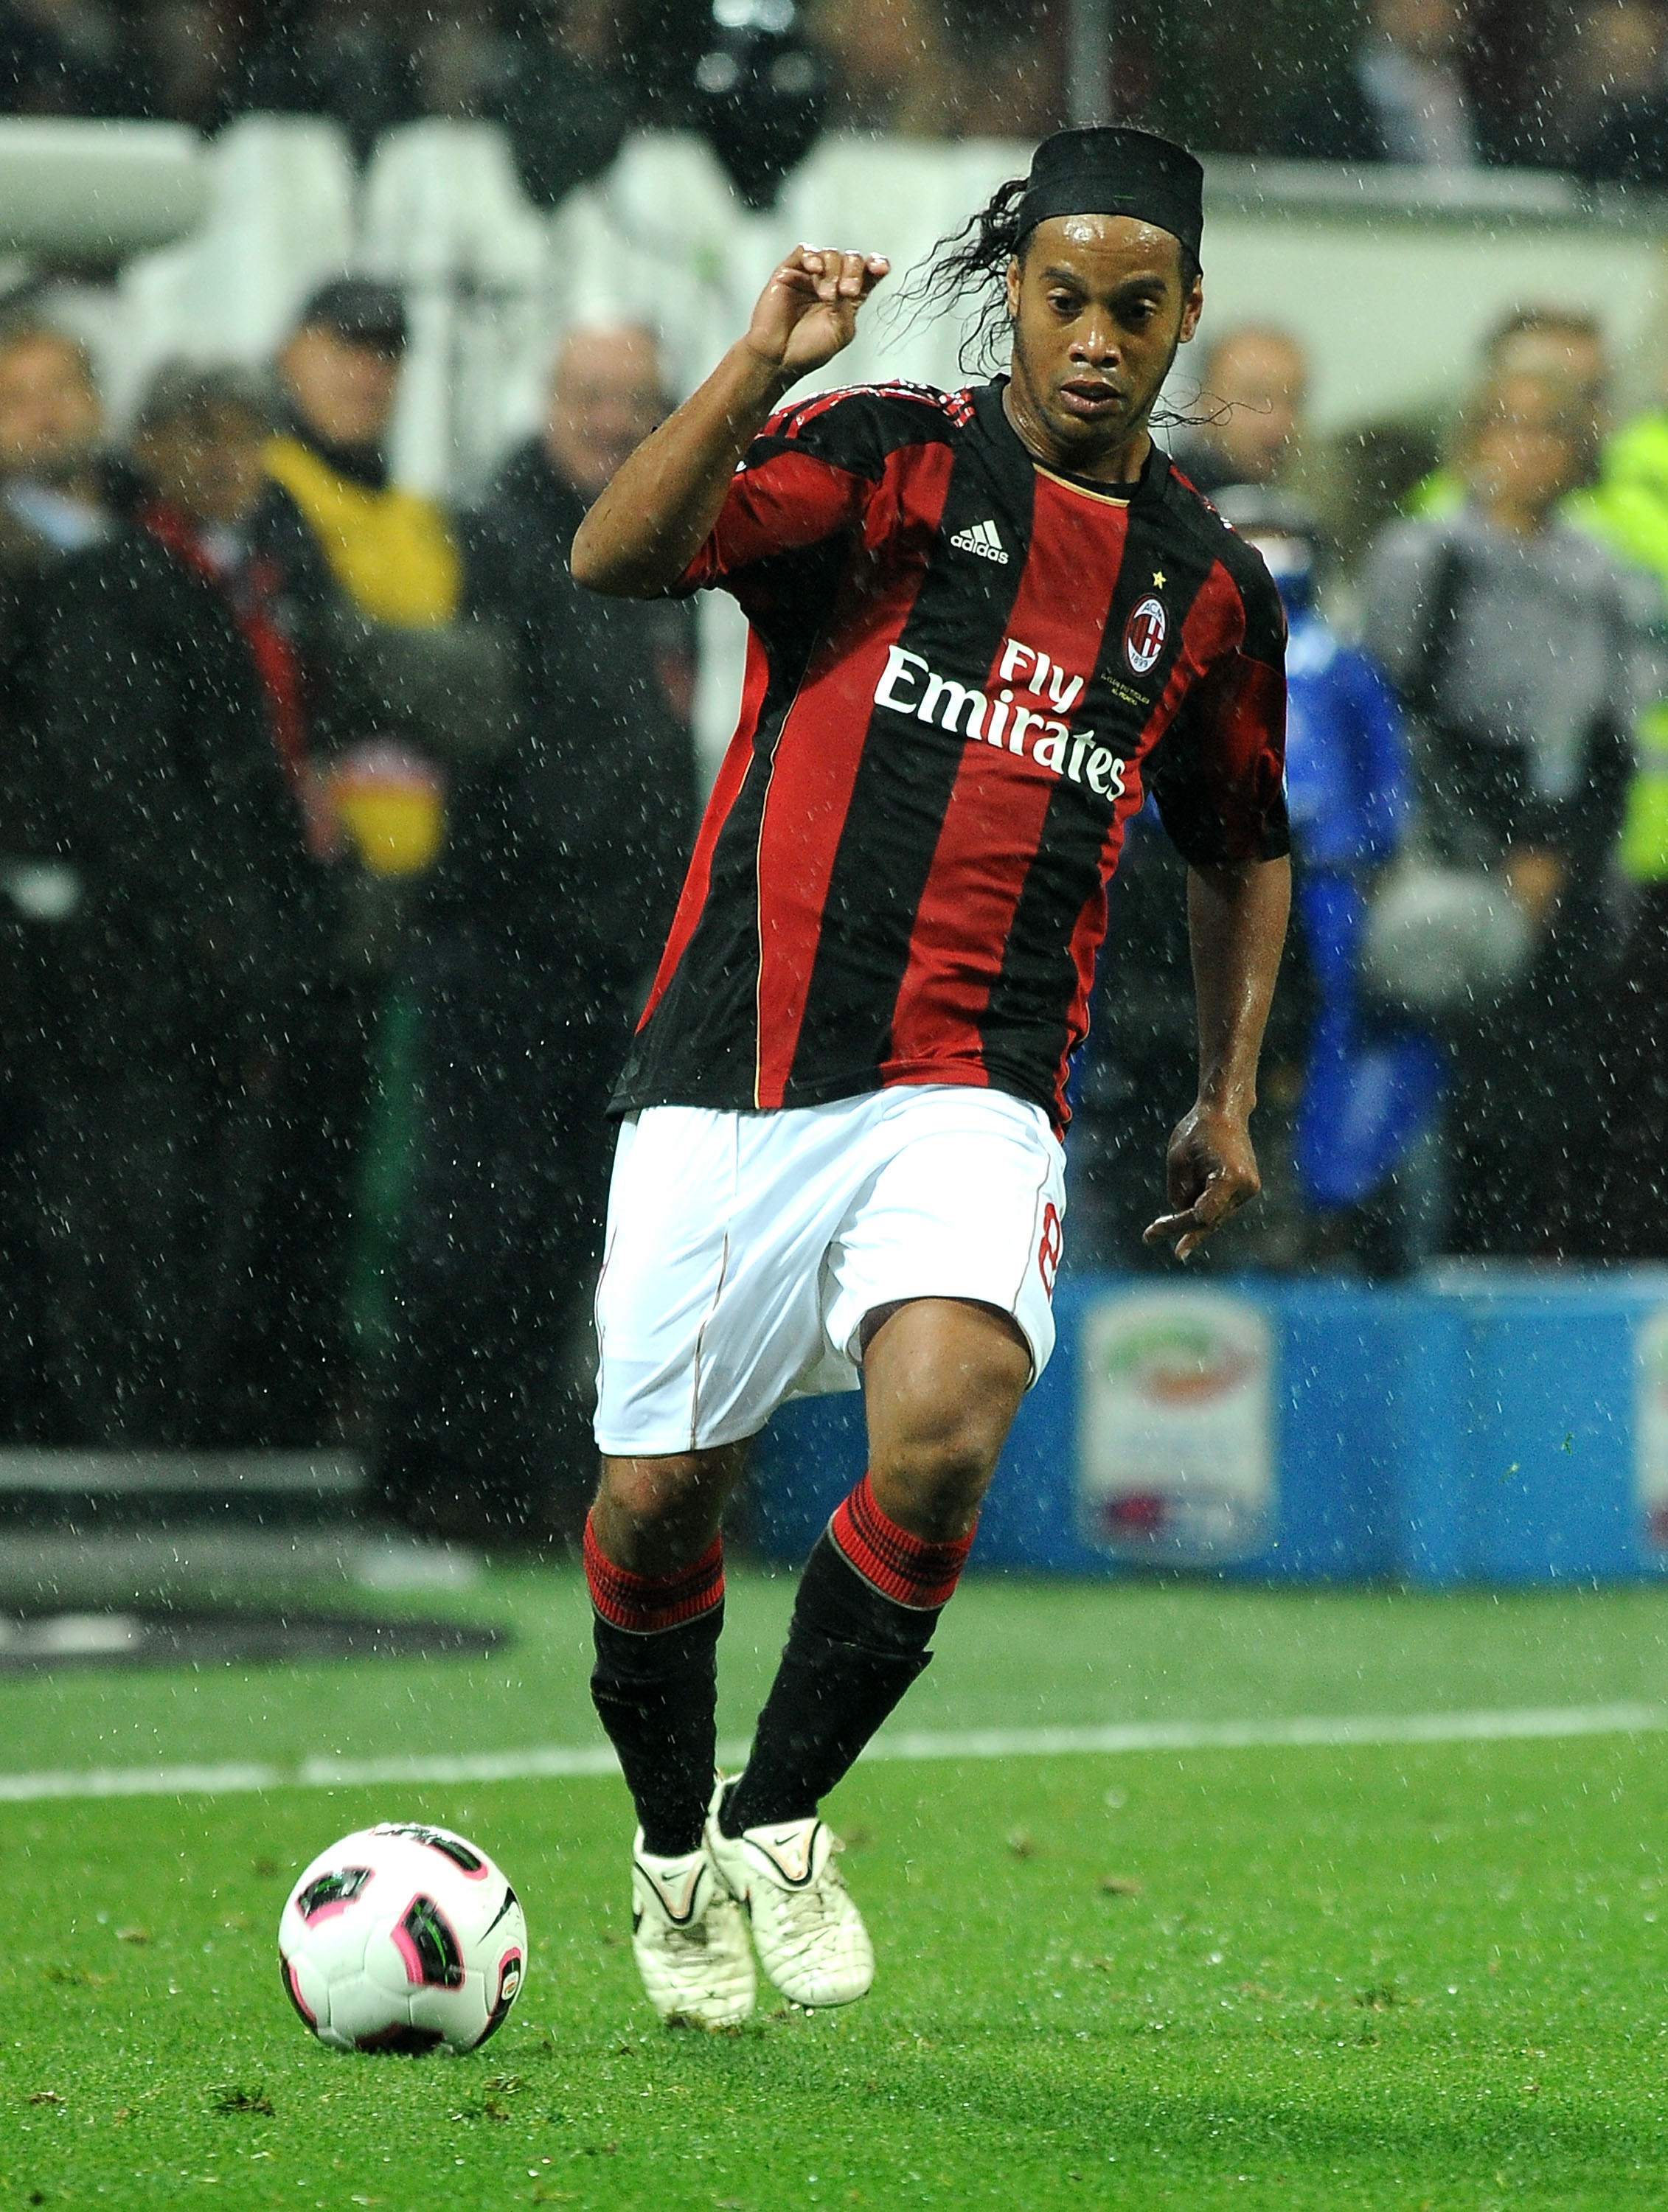 MILAN, ITALY - OCTOBER 16:  Ronaldinho of AC Milan in action during the Serie A match between AC Milan and AC Chievo Verona at Stadio Giuseppe Meazza on October 16, 2010 in Milan, Italy. (Photo by Massimo Cebrelli/Getty Images)